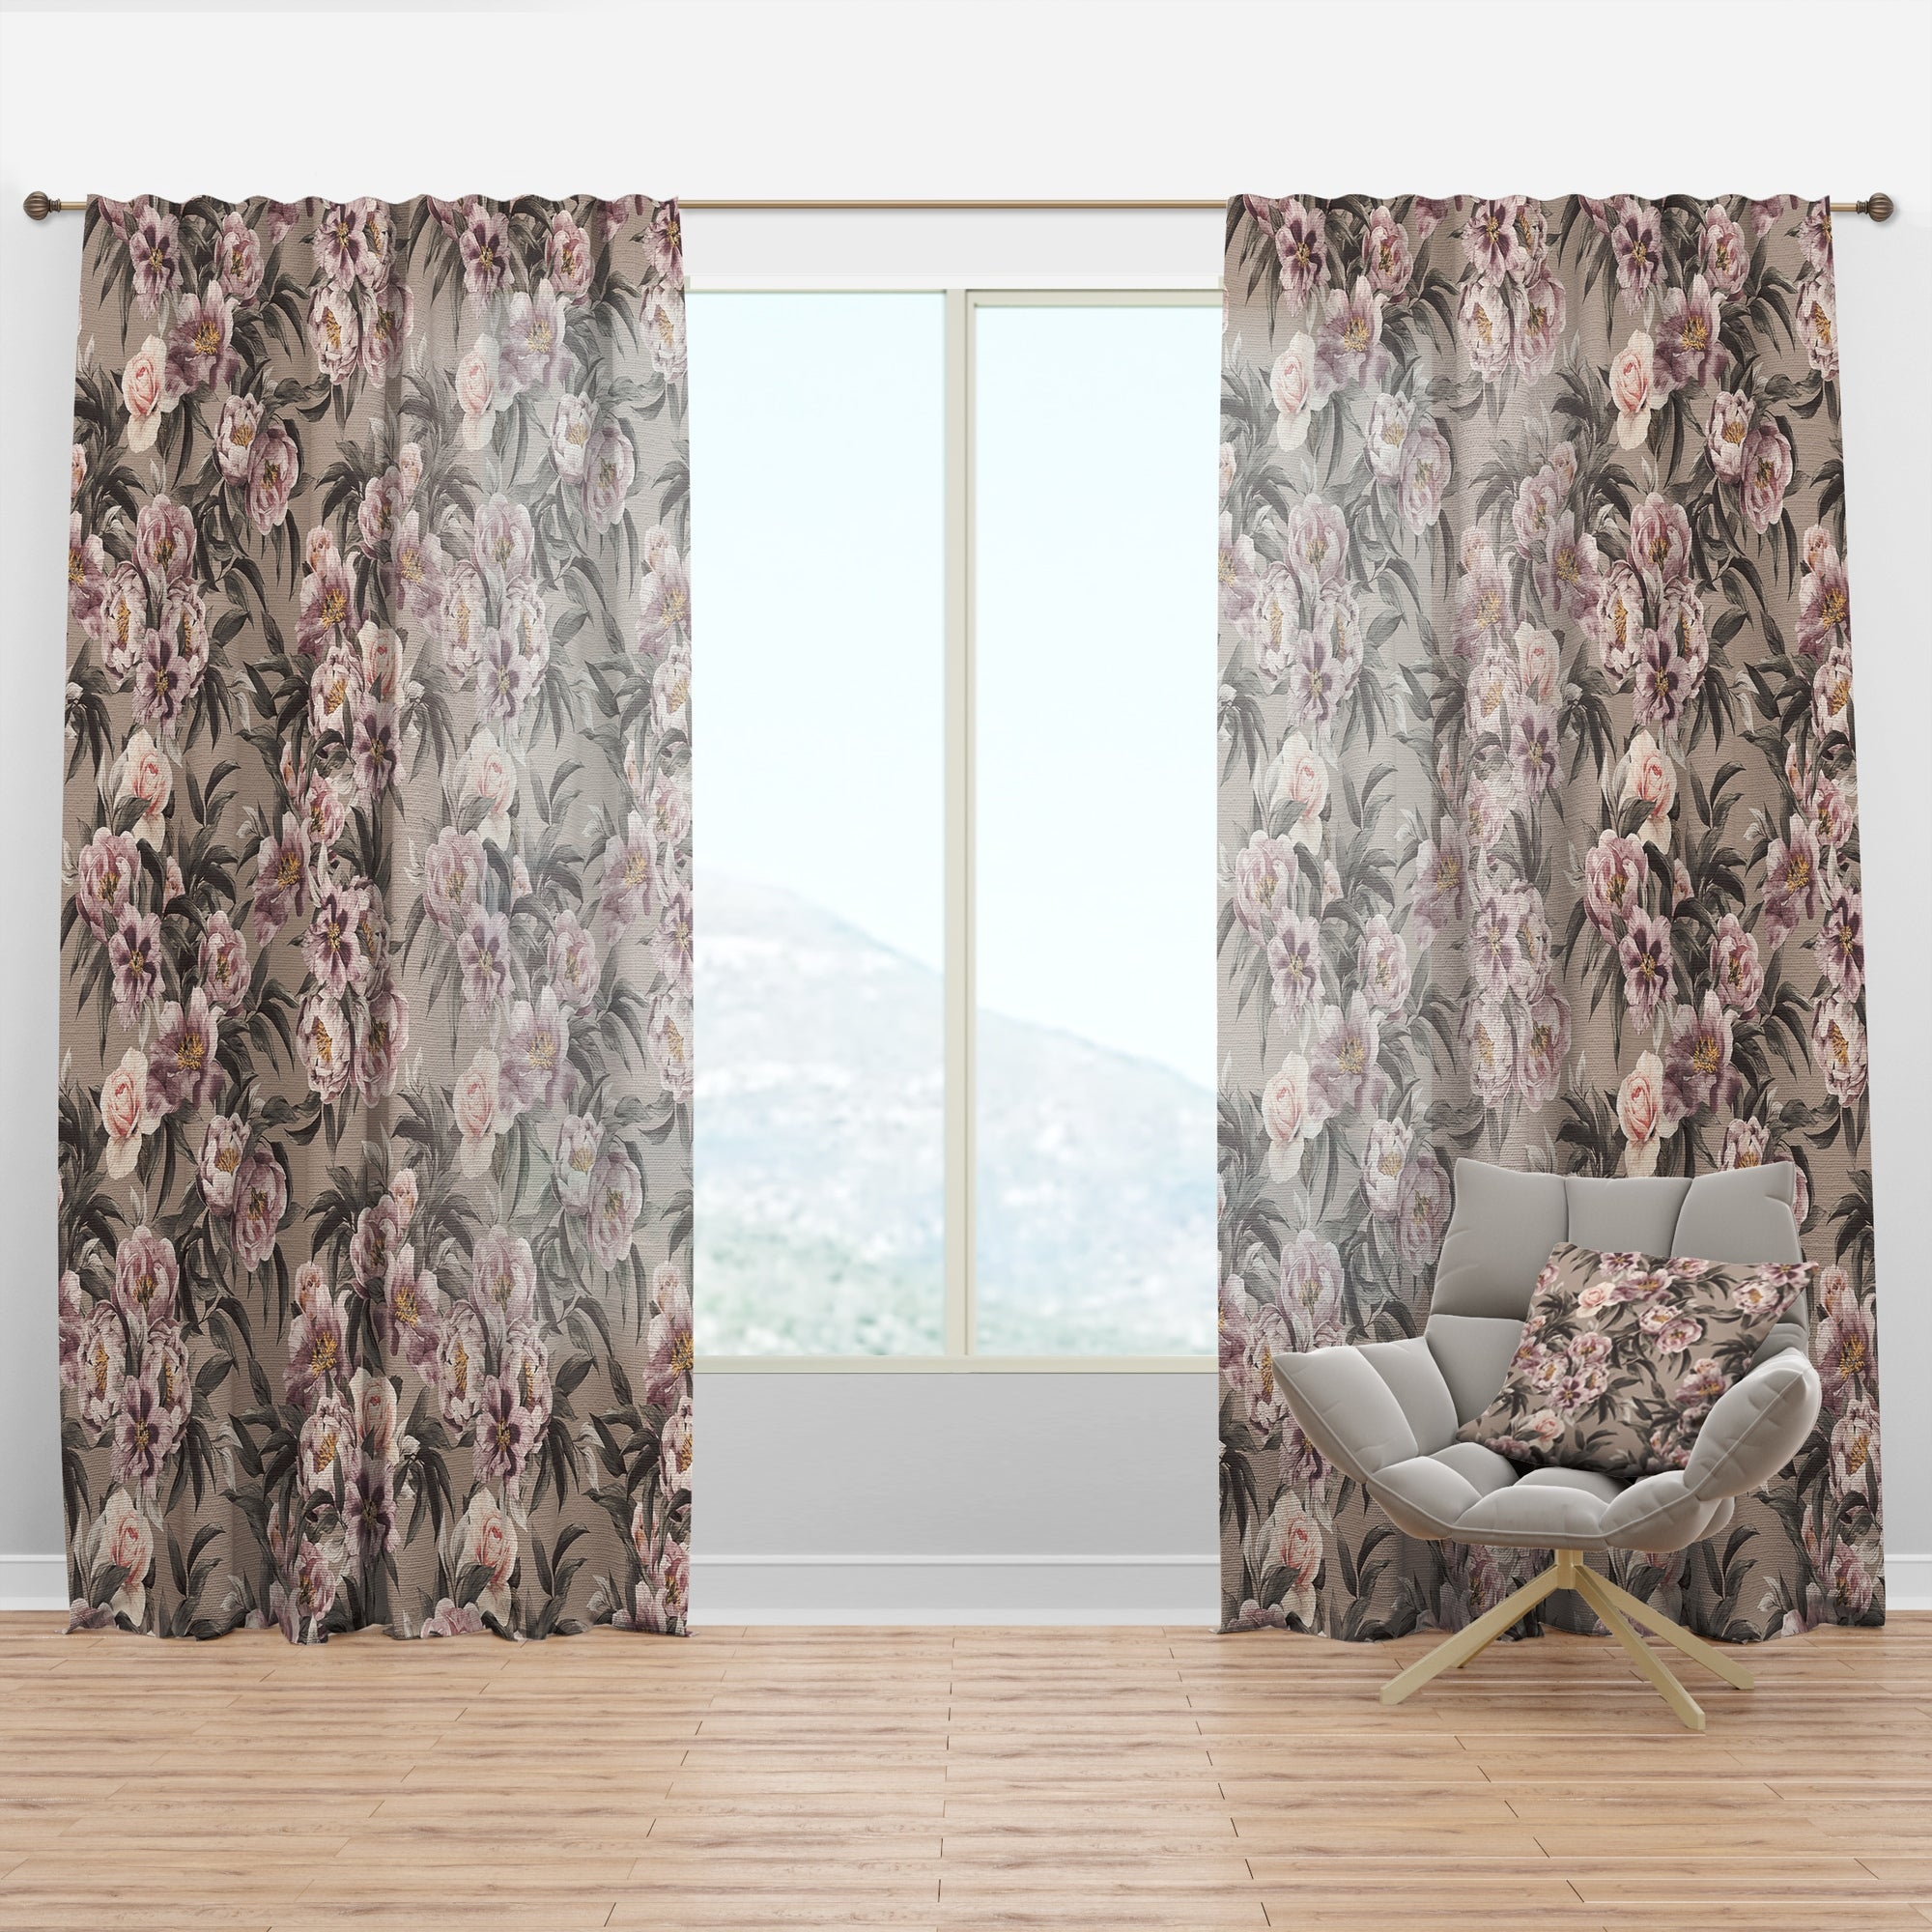 Designart Pink Pansies And Peonies Floral Curtain Panel On Sale Overstock 29625623